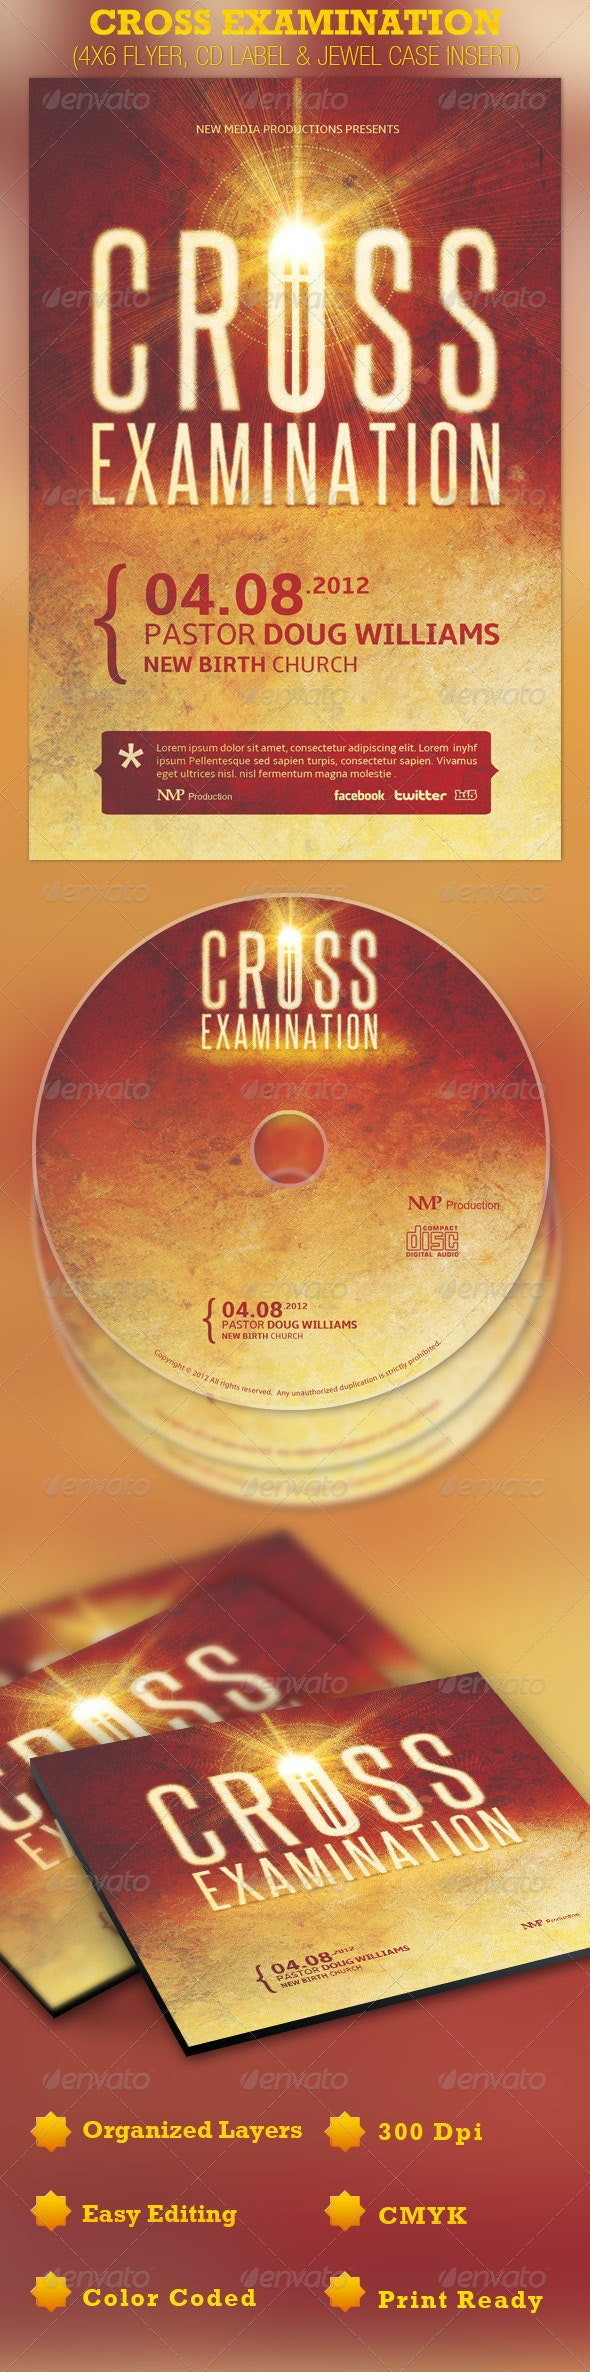 Cross Examination Flyer, CD and Jewel Case - Church Flyers